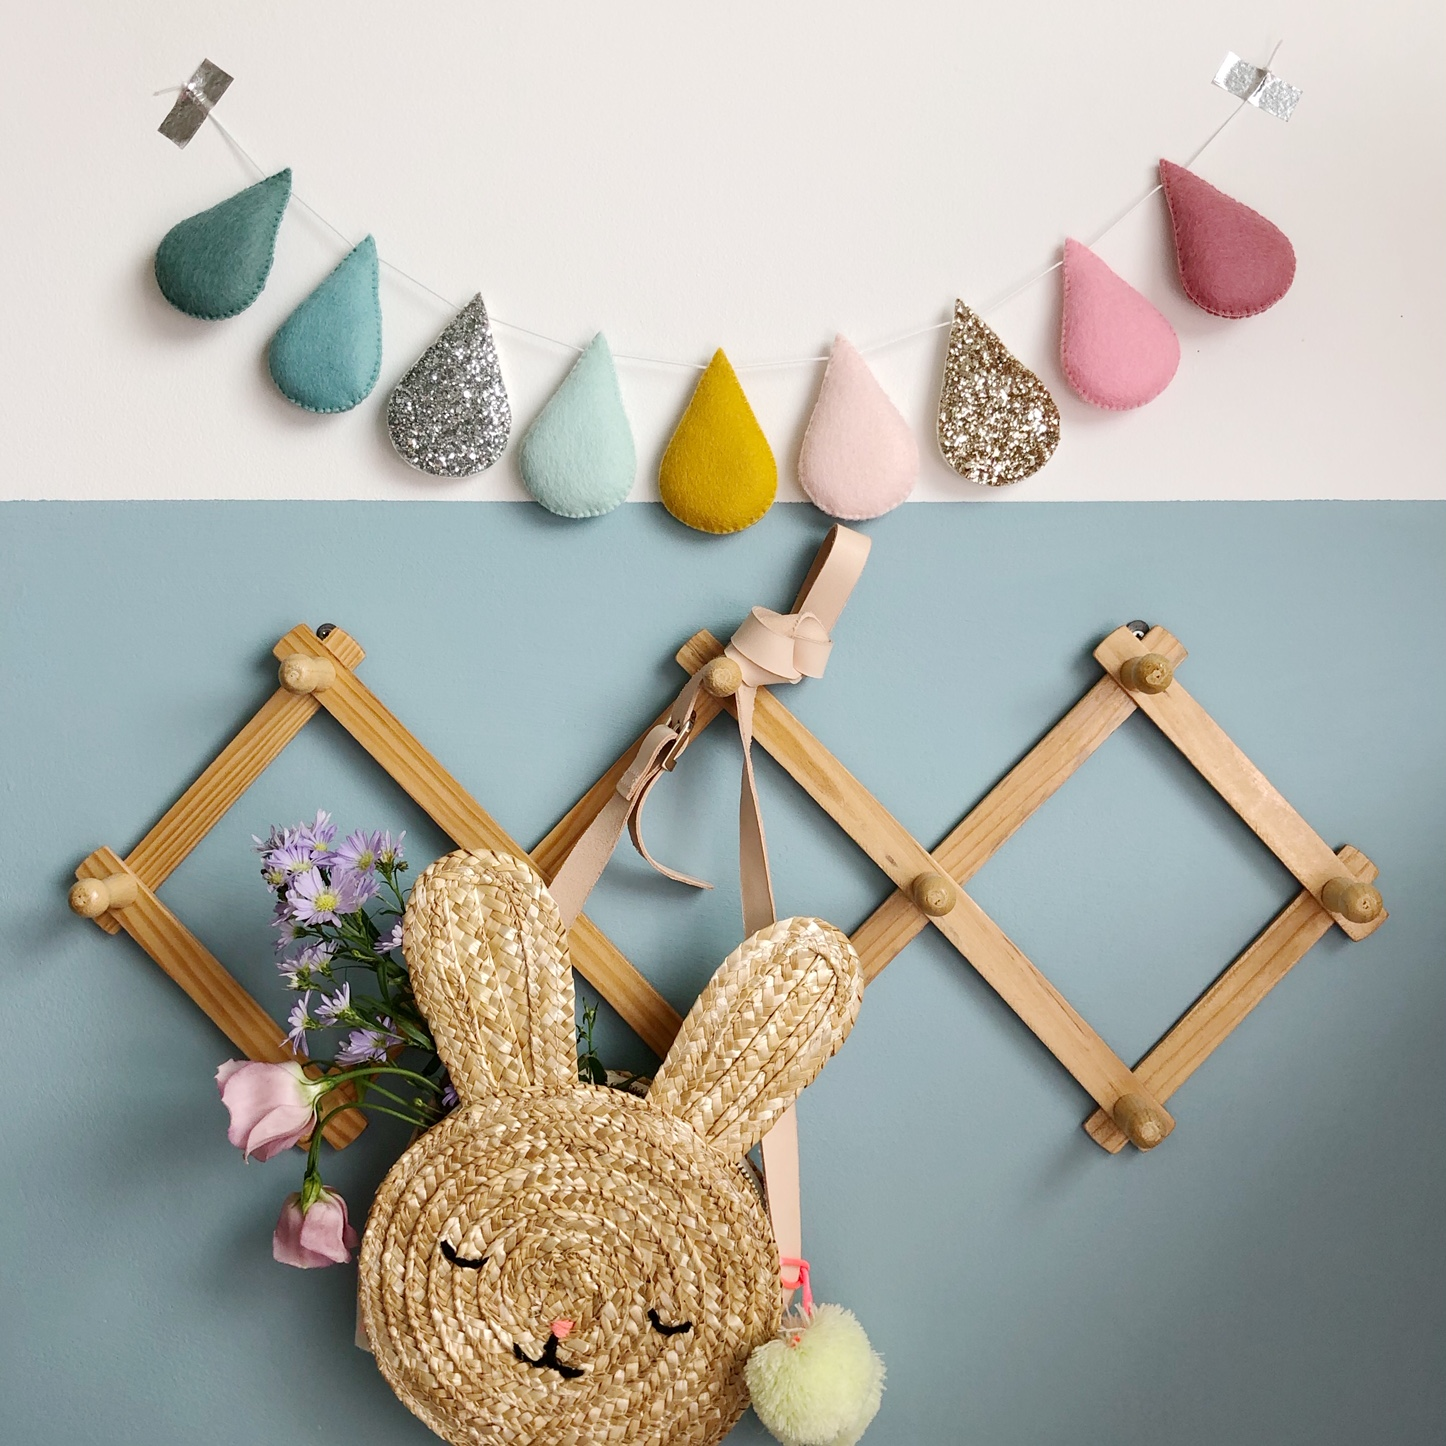 The sweetest straw bunny bag, perfect for collecting eggs!